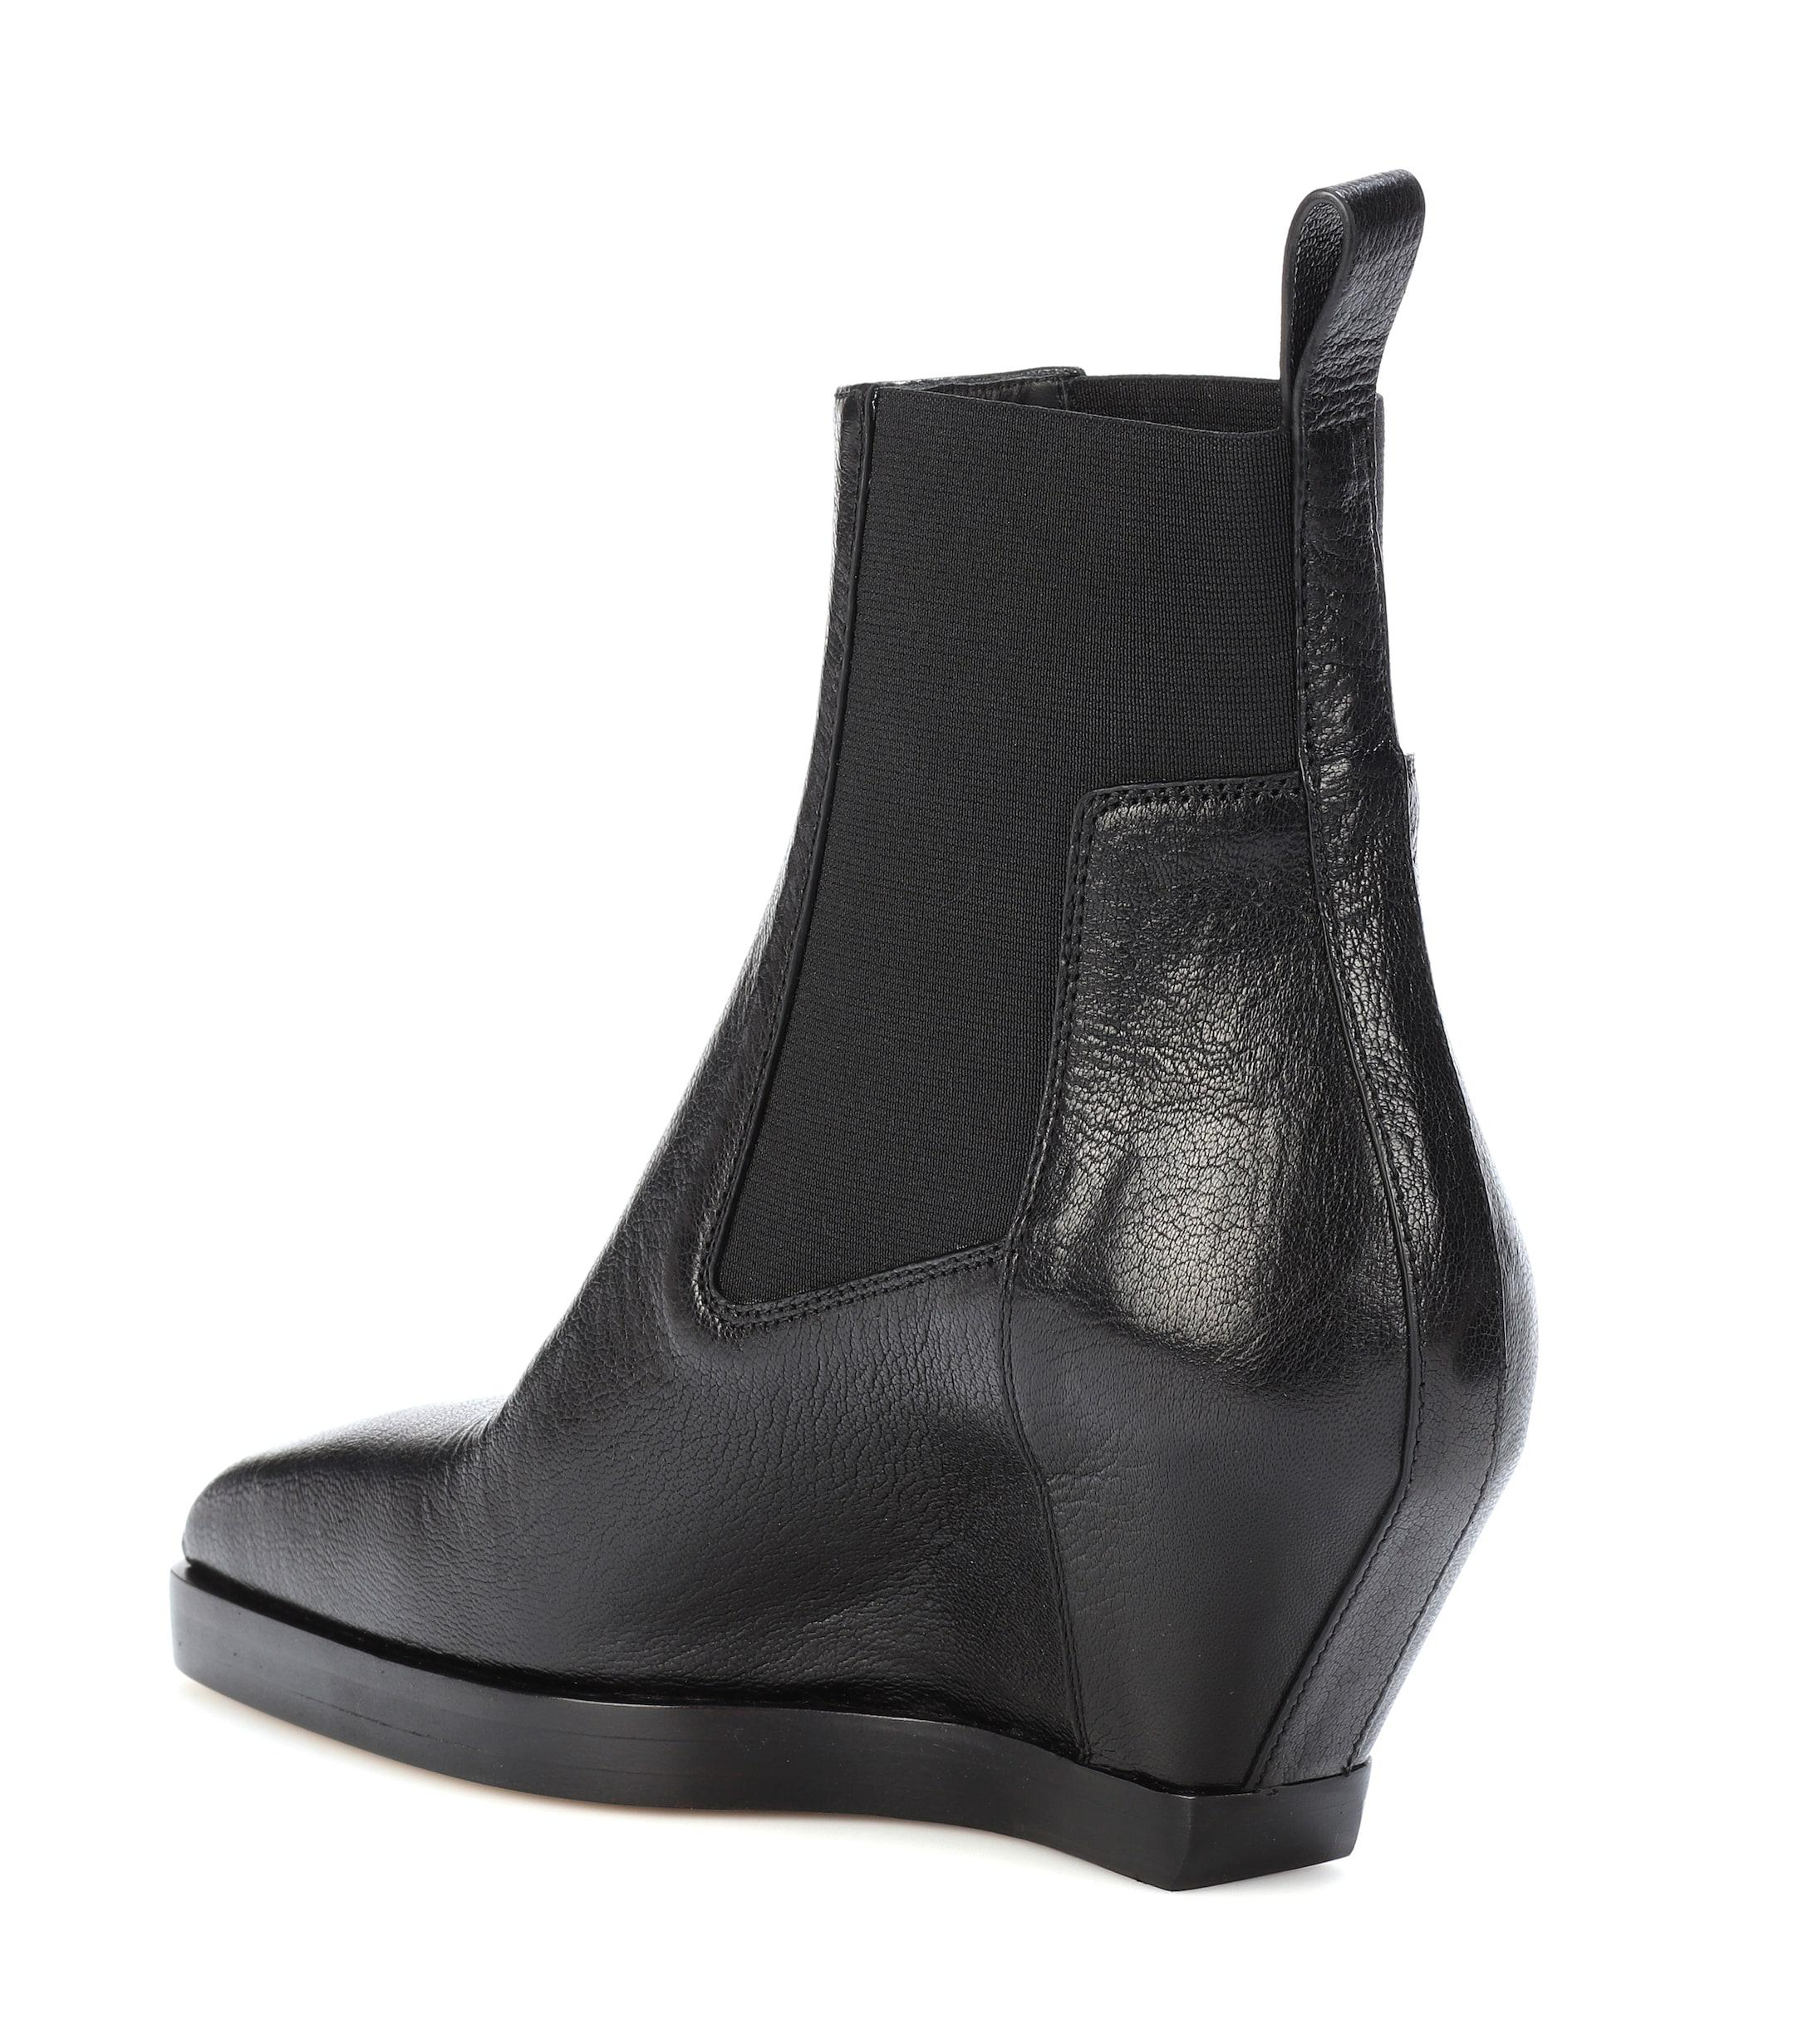 4a584db9d31b Rick Owens - Black Leather Ankle Boots - Lyst. View fullscreen